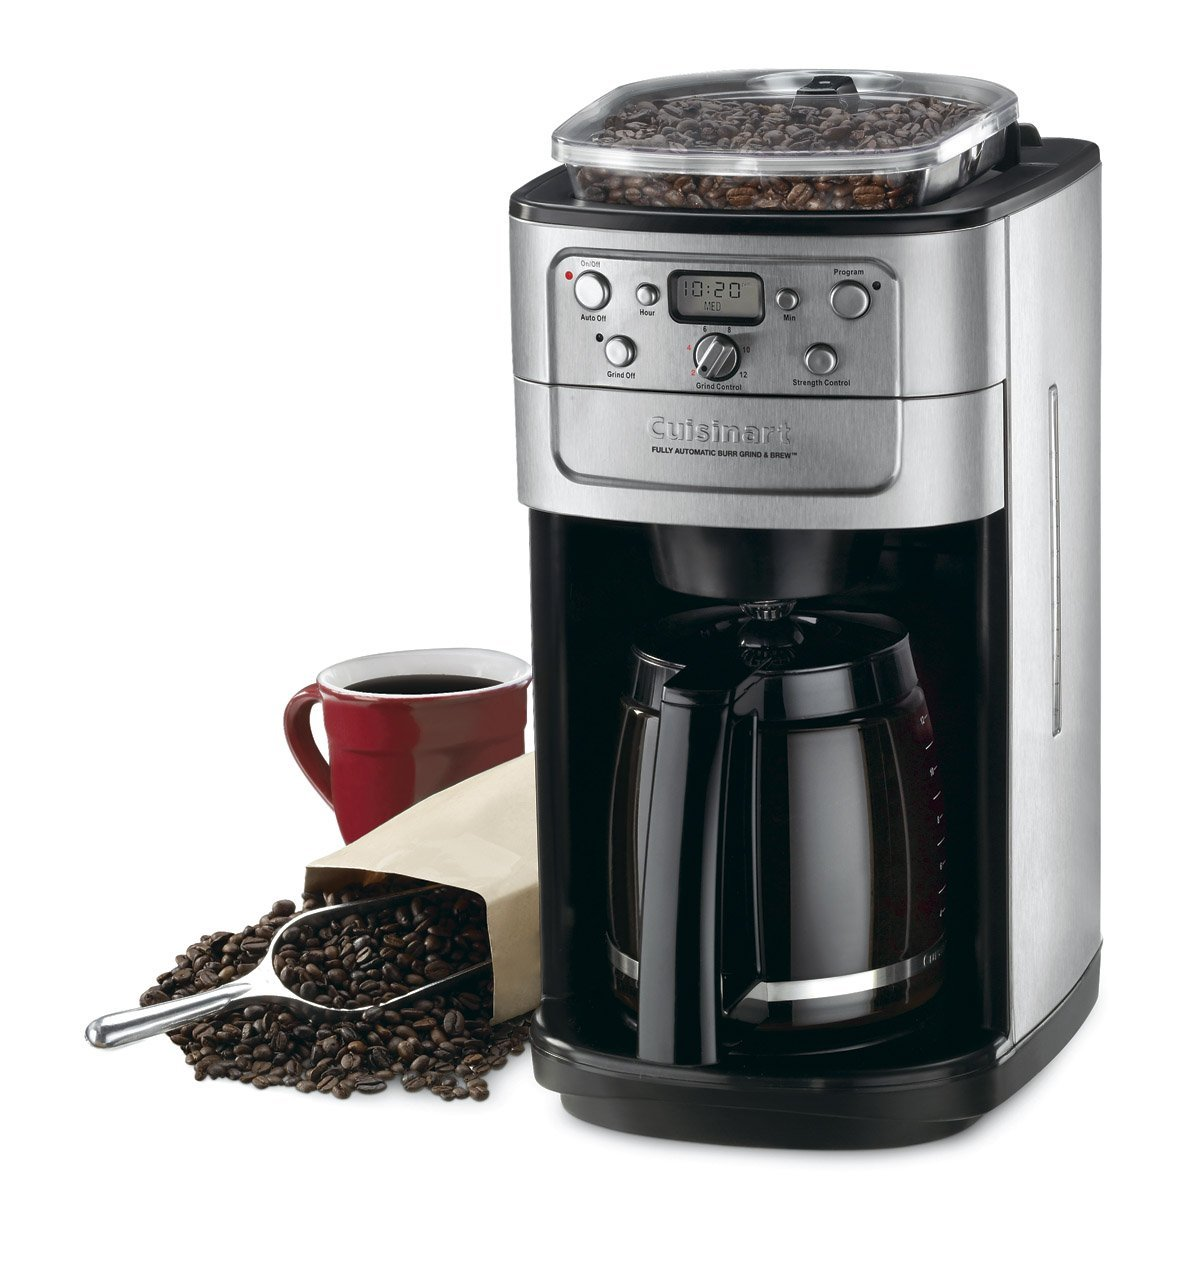 Cuisinart Grind And Brew Coffee Maker Dgb 700bc : Cuisinart DGB-700BC Grind-and-Brew Automatic Coffeemaker Review - Coffee Drinker